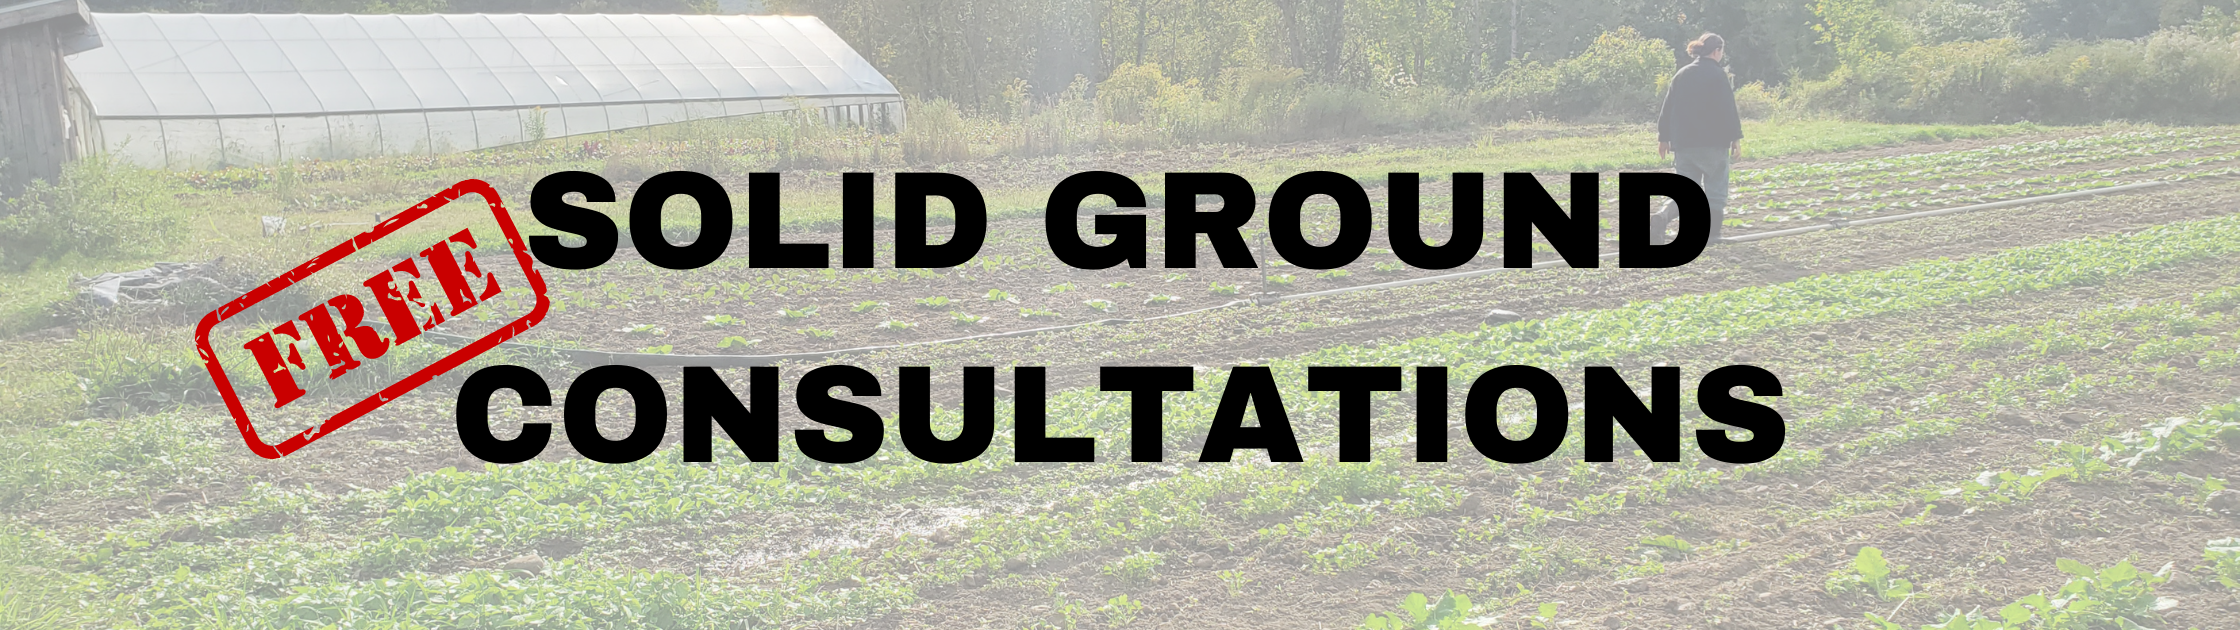 Solid ground free consultations